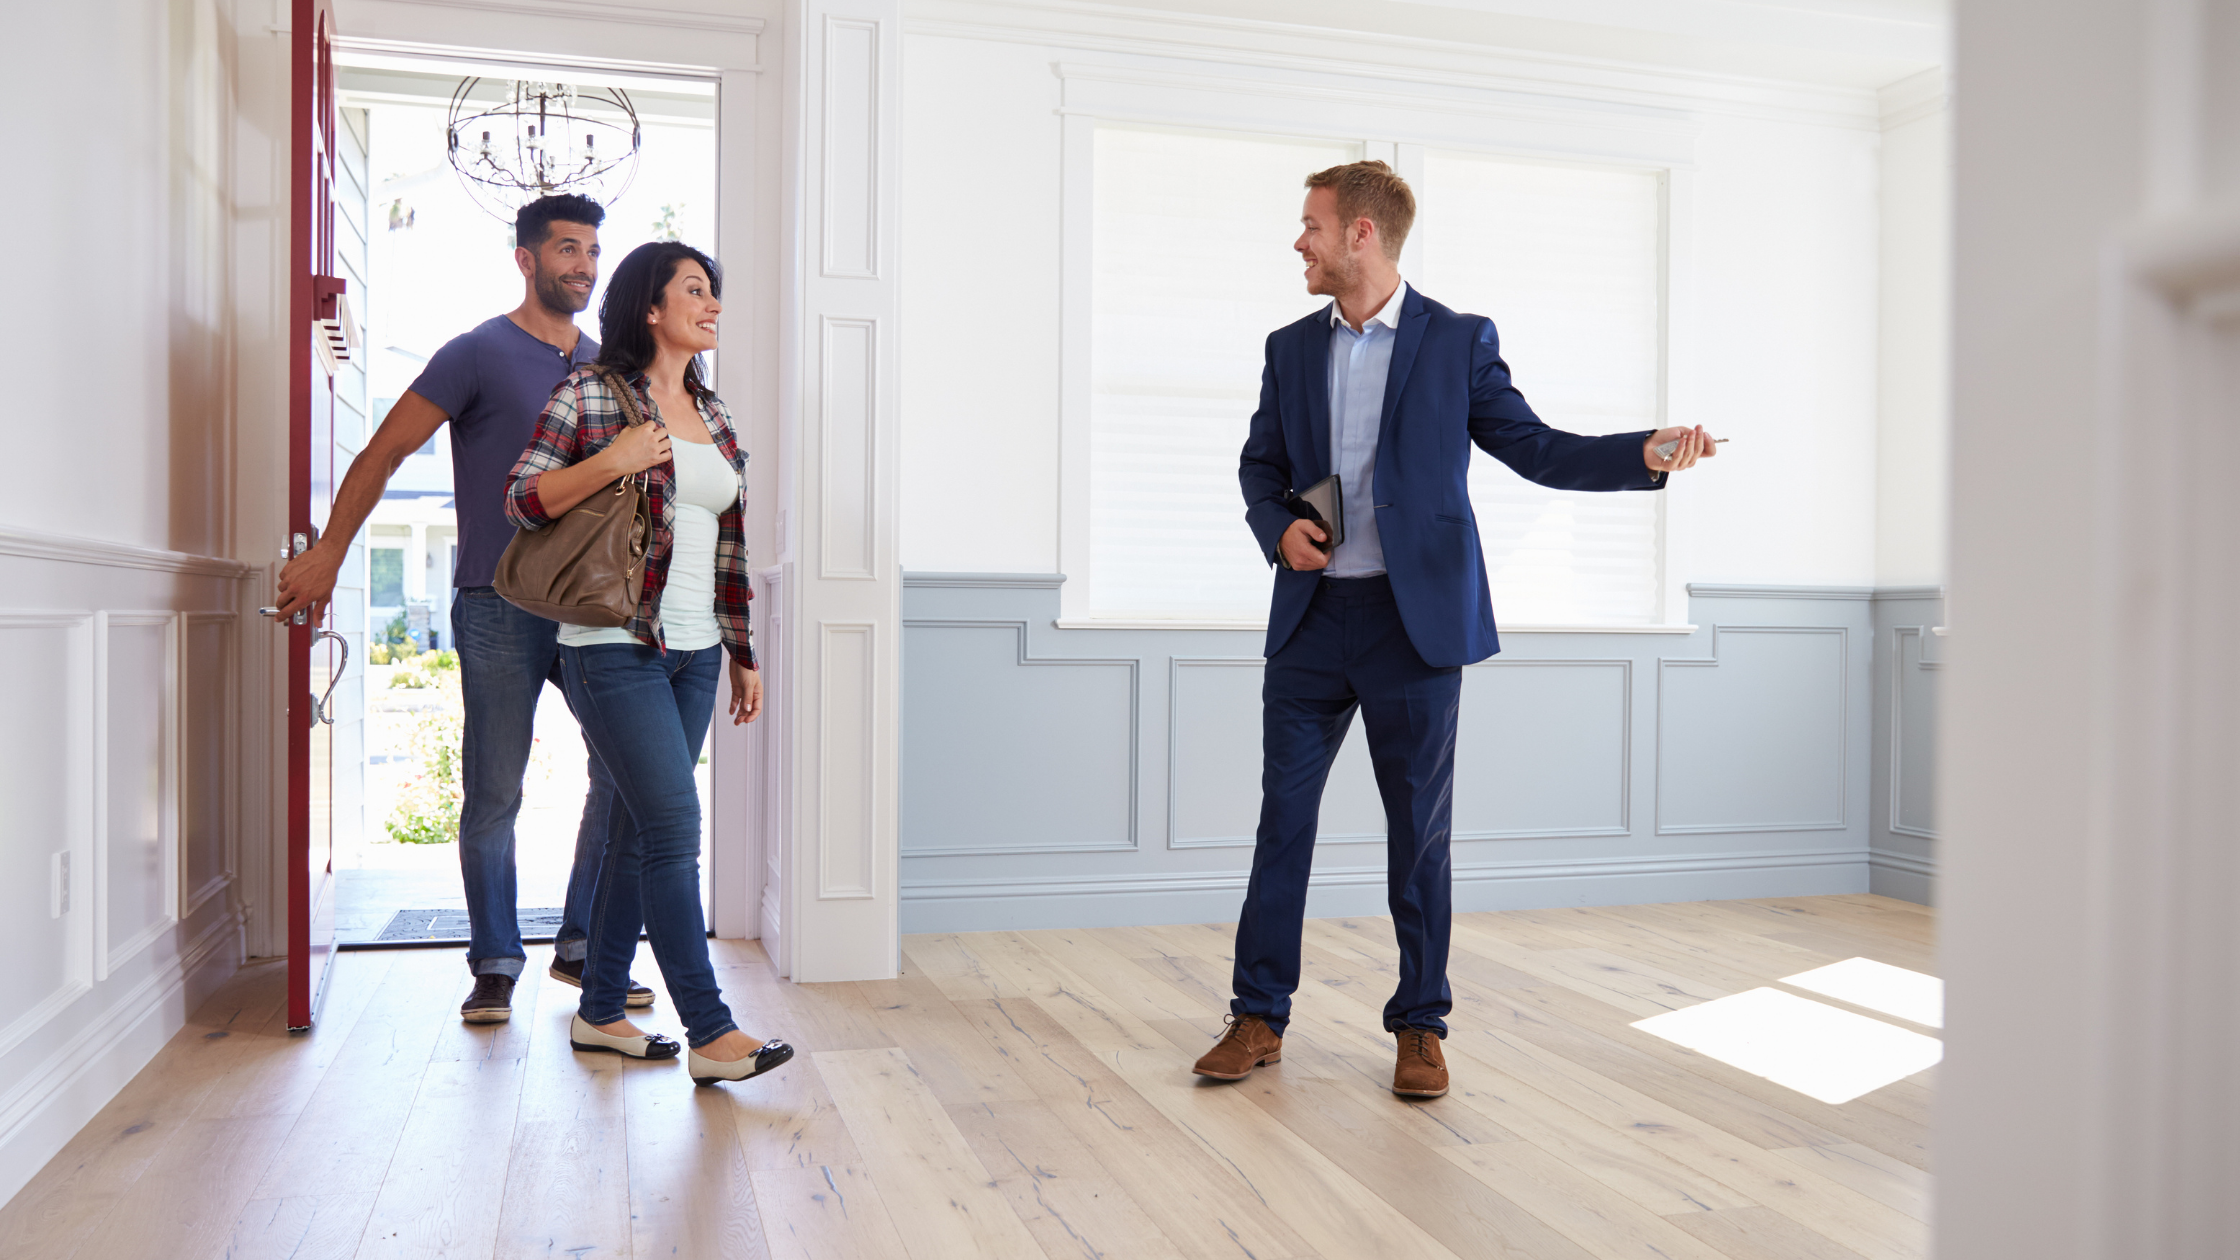 Being showing ready to sell your home in New Mexico